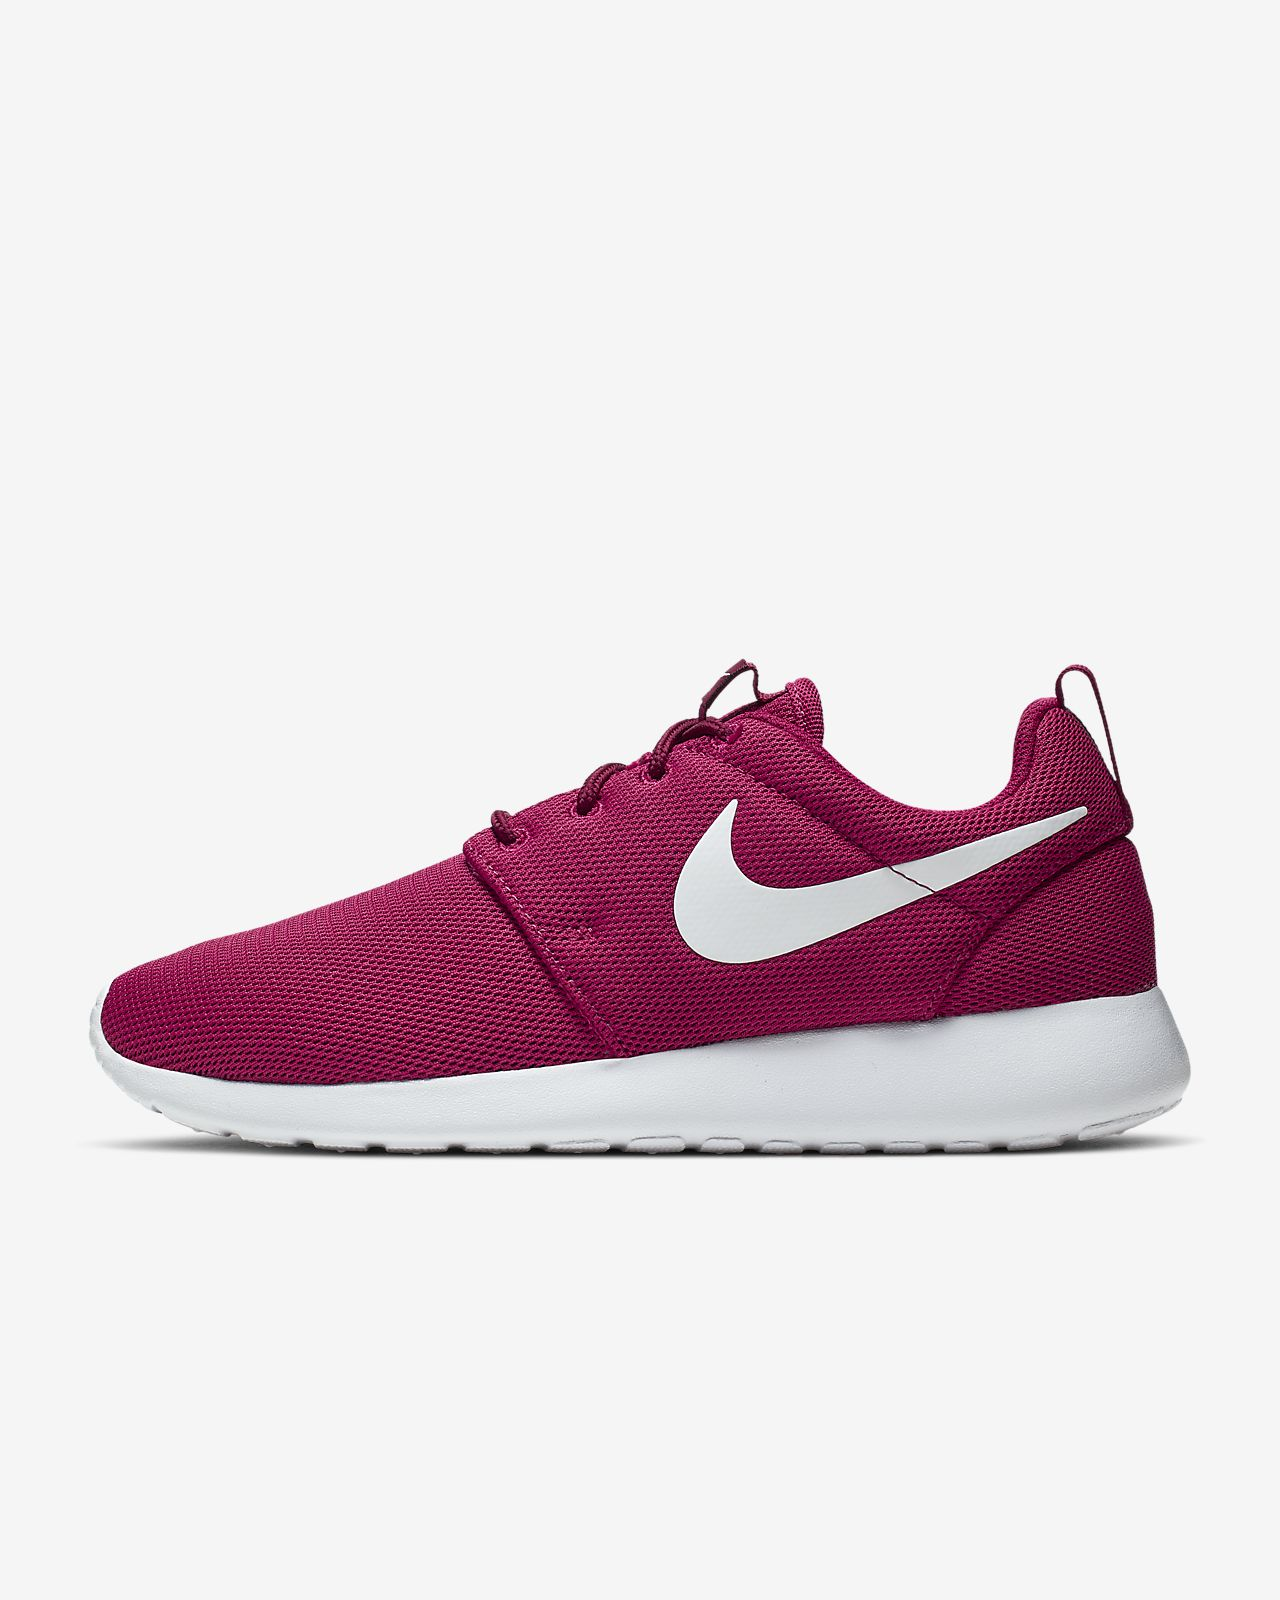 the latest f23e6 e77a0 Nike Roshe One Women's Shoe